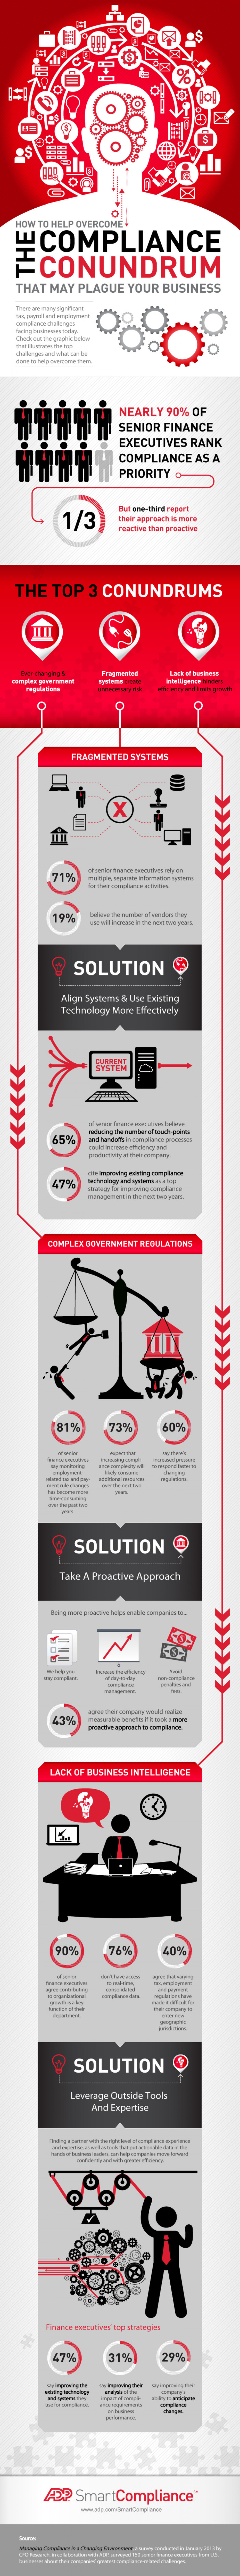 How to Help Overcome the Compliance Conundrum That May Plague Your Business Infographic